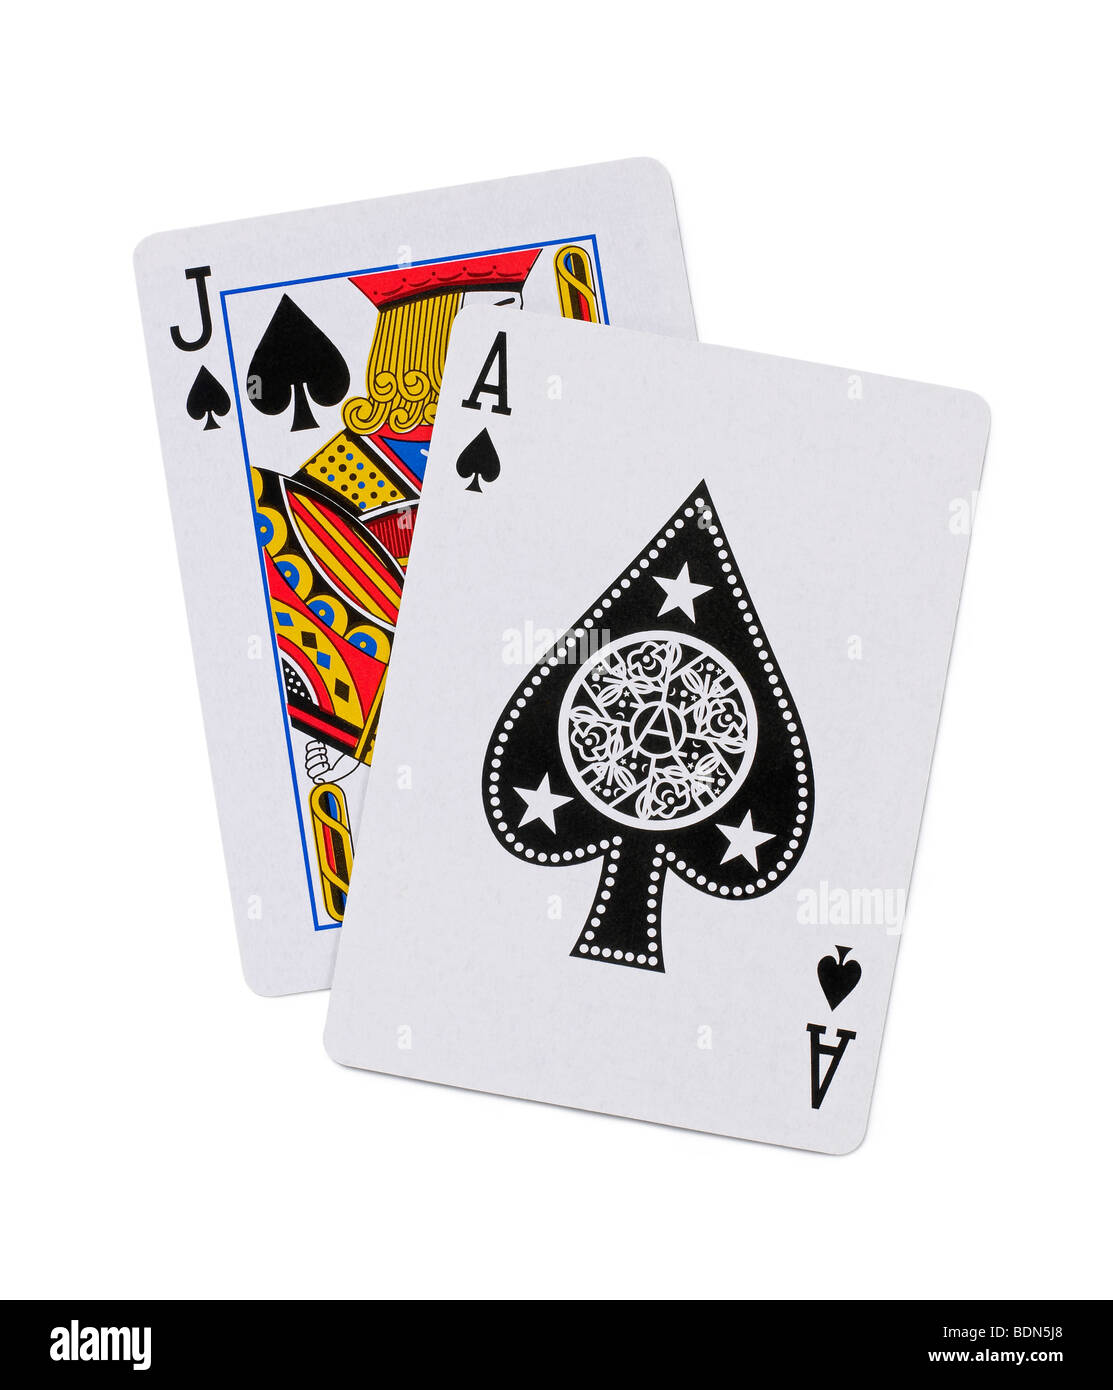 Playing Cards 21 Black Jack Stock Photo, Royalty Free